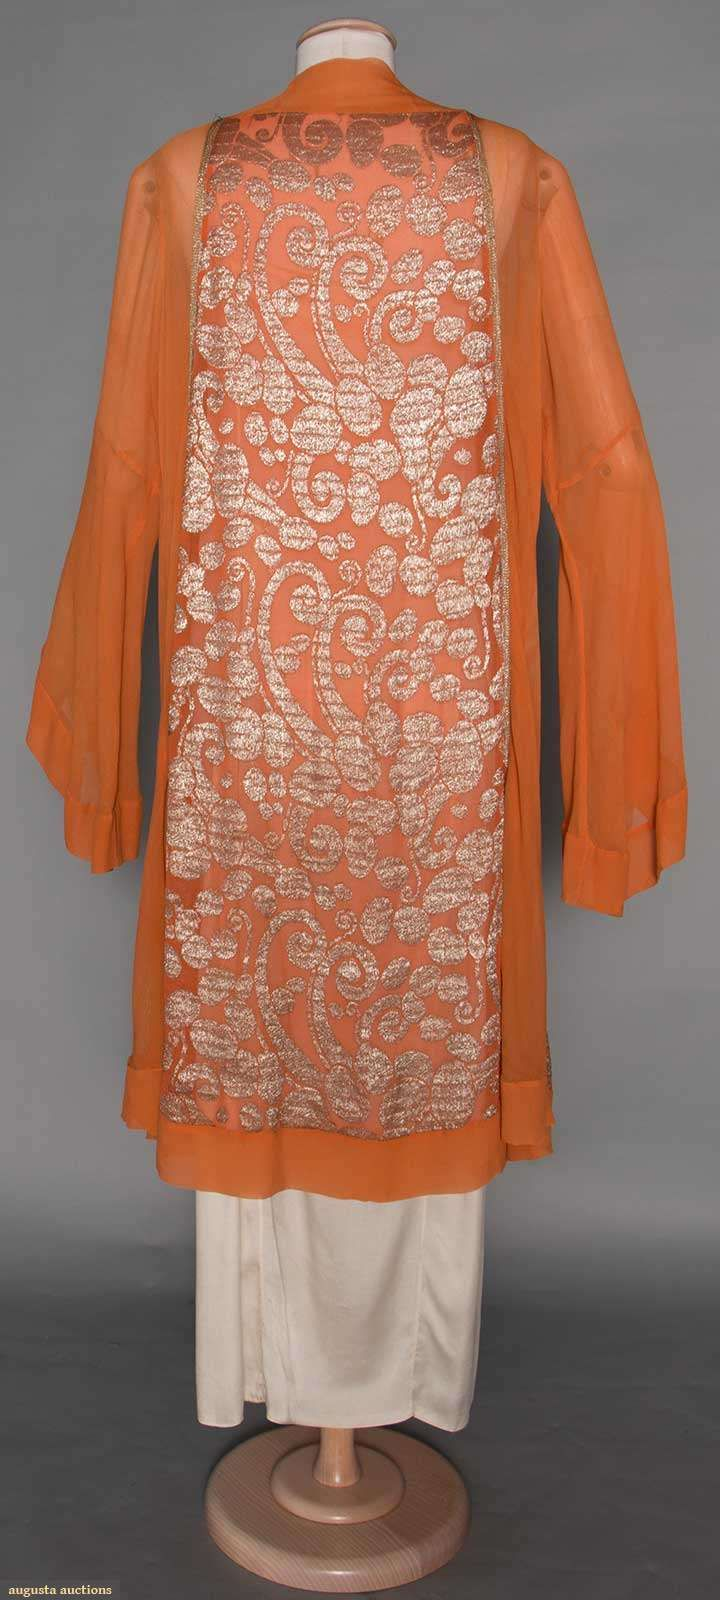 Jeanne Lanvin Lame Coat, Late 1920s. For upcoming vintage fashion and textile sale.